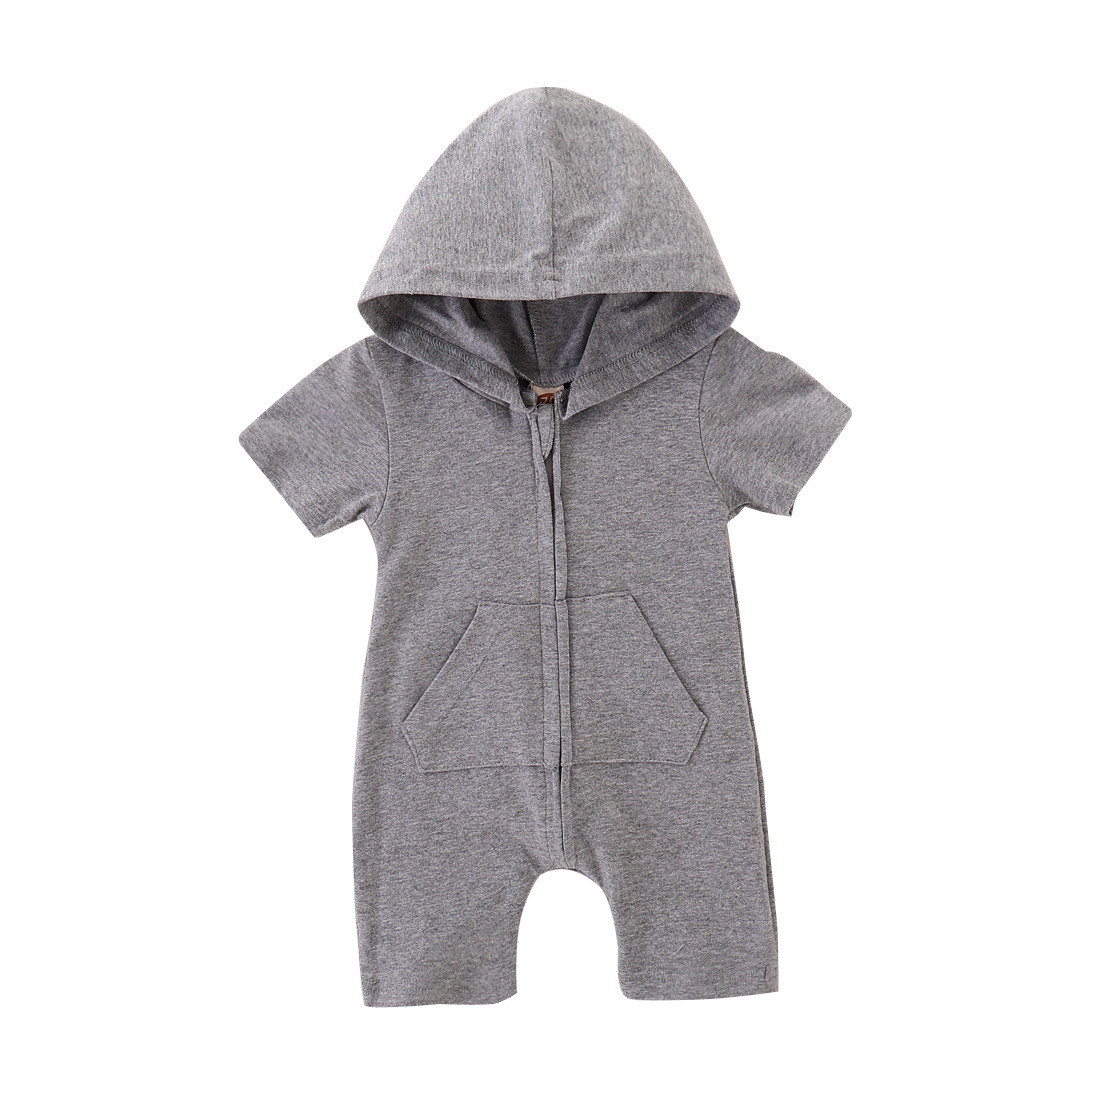 TooLoud Cute Shaved Ice Chill Out Baby Romper Bodysuit